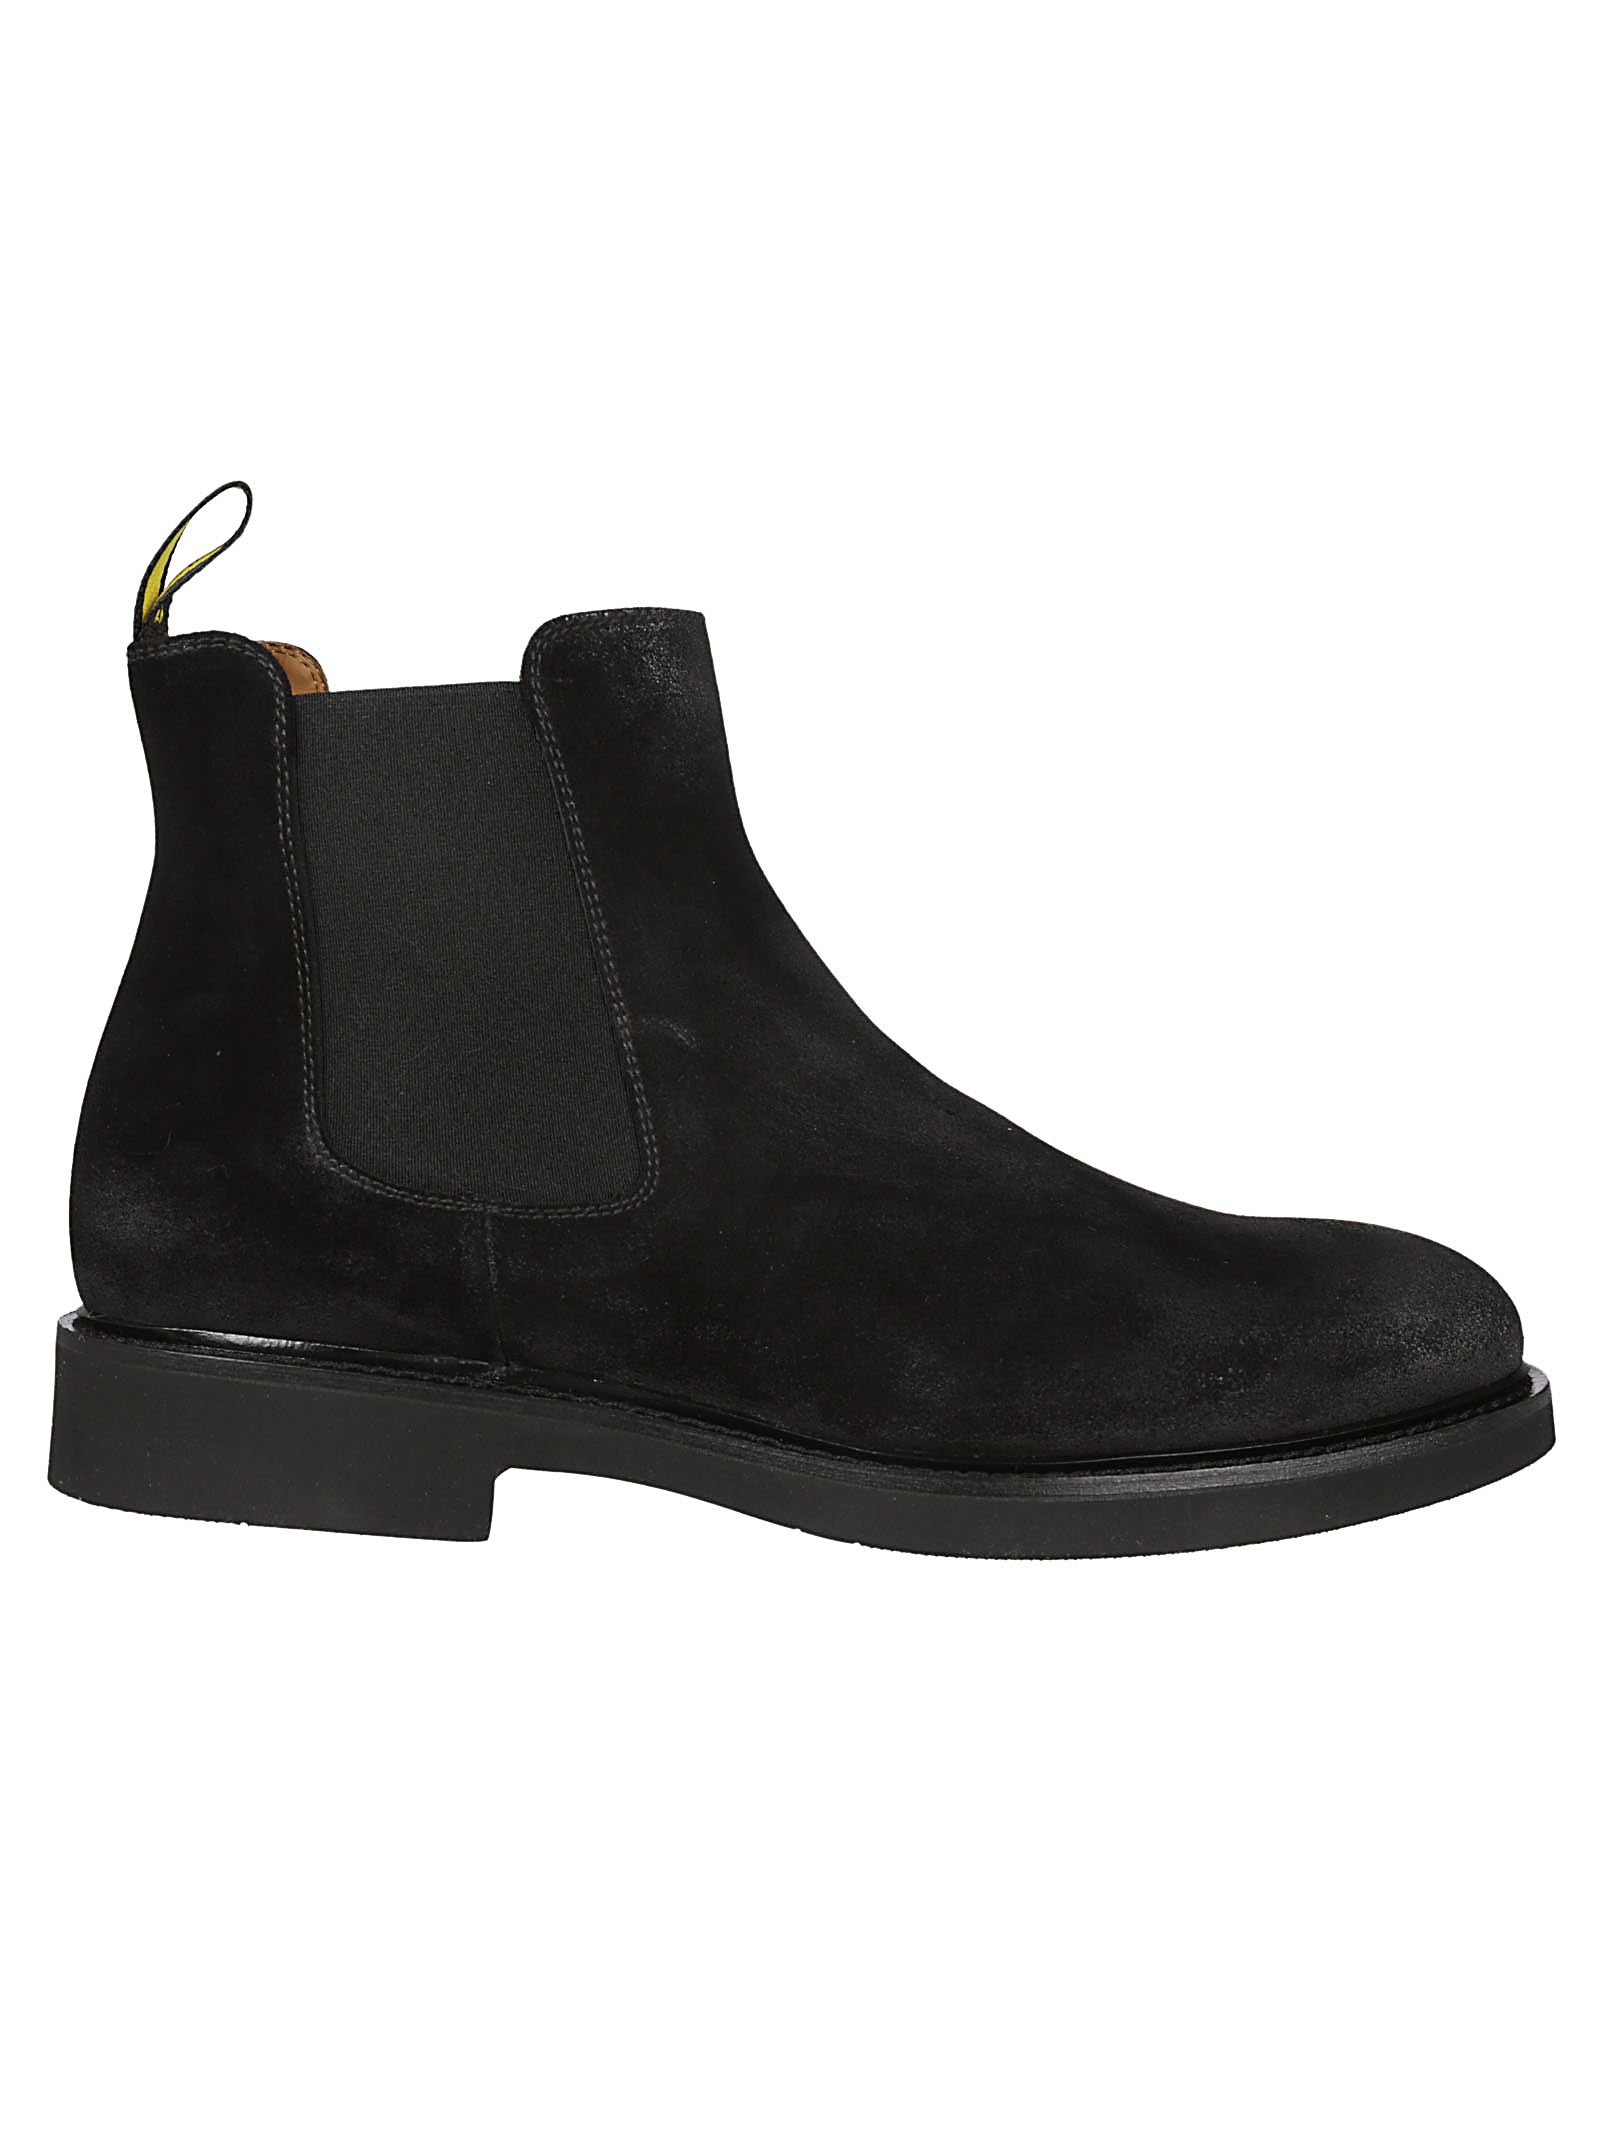 Doucal's Elasticated Ankle Boots